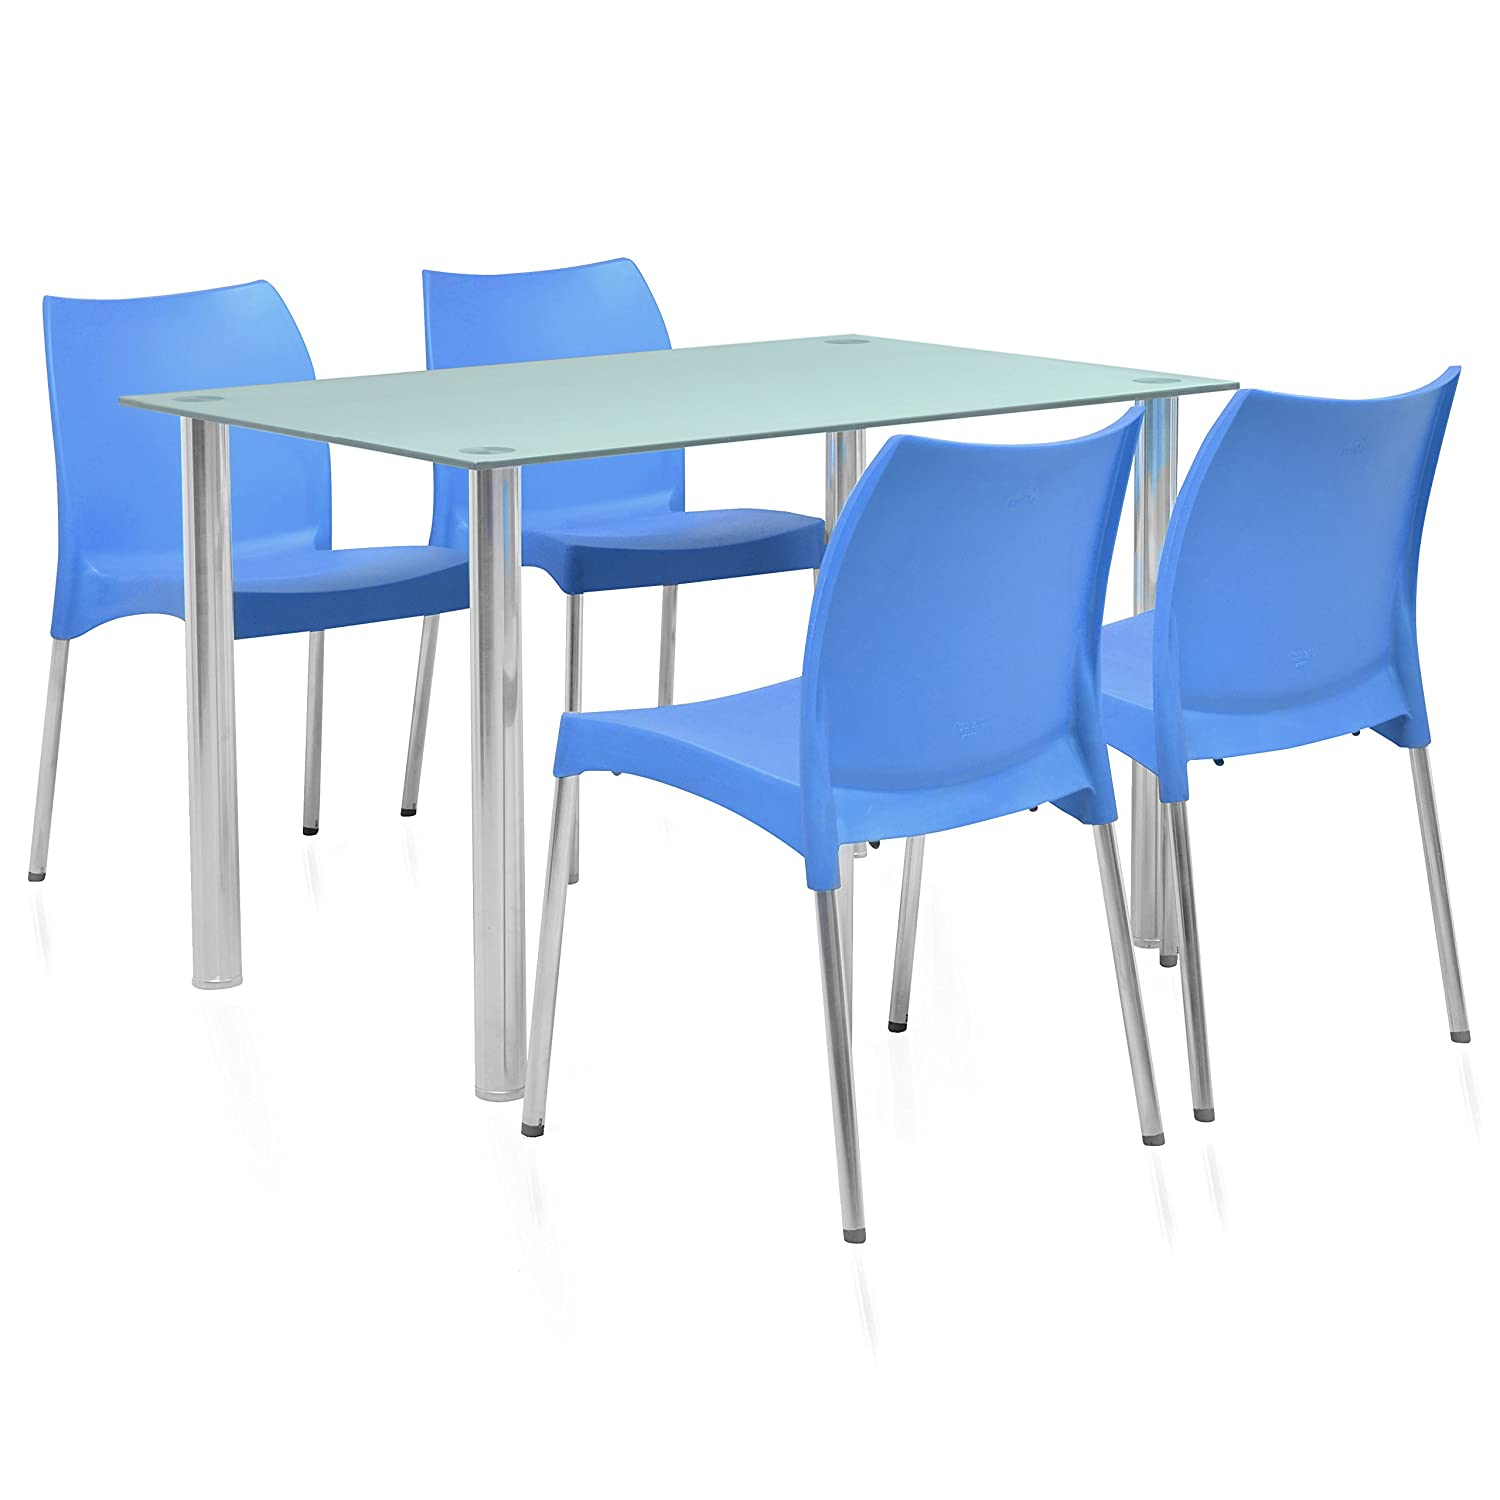 Nilkamal plastic dining table online shopping image for Dining room table 4 seater